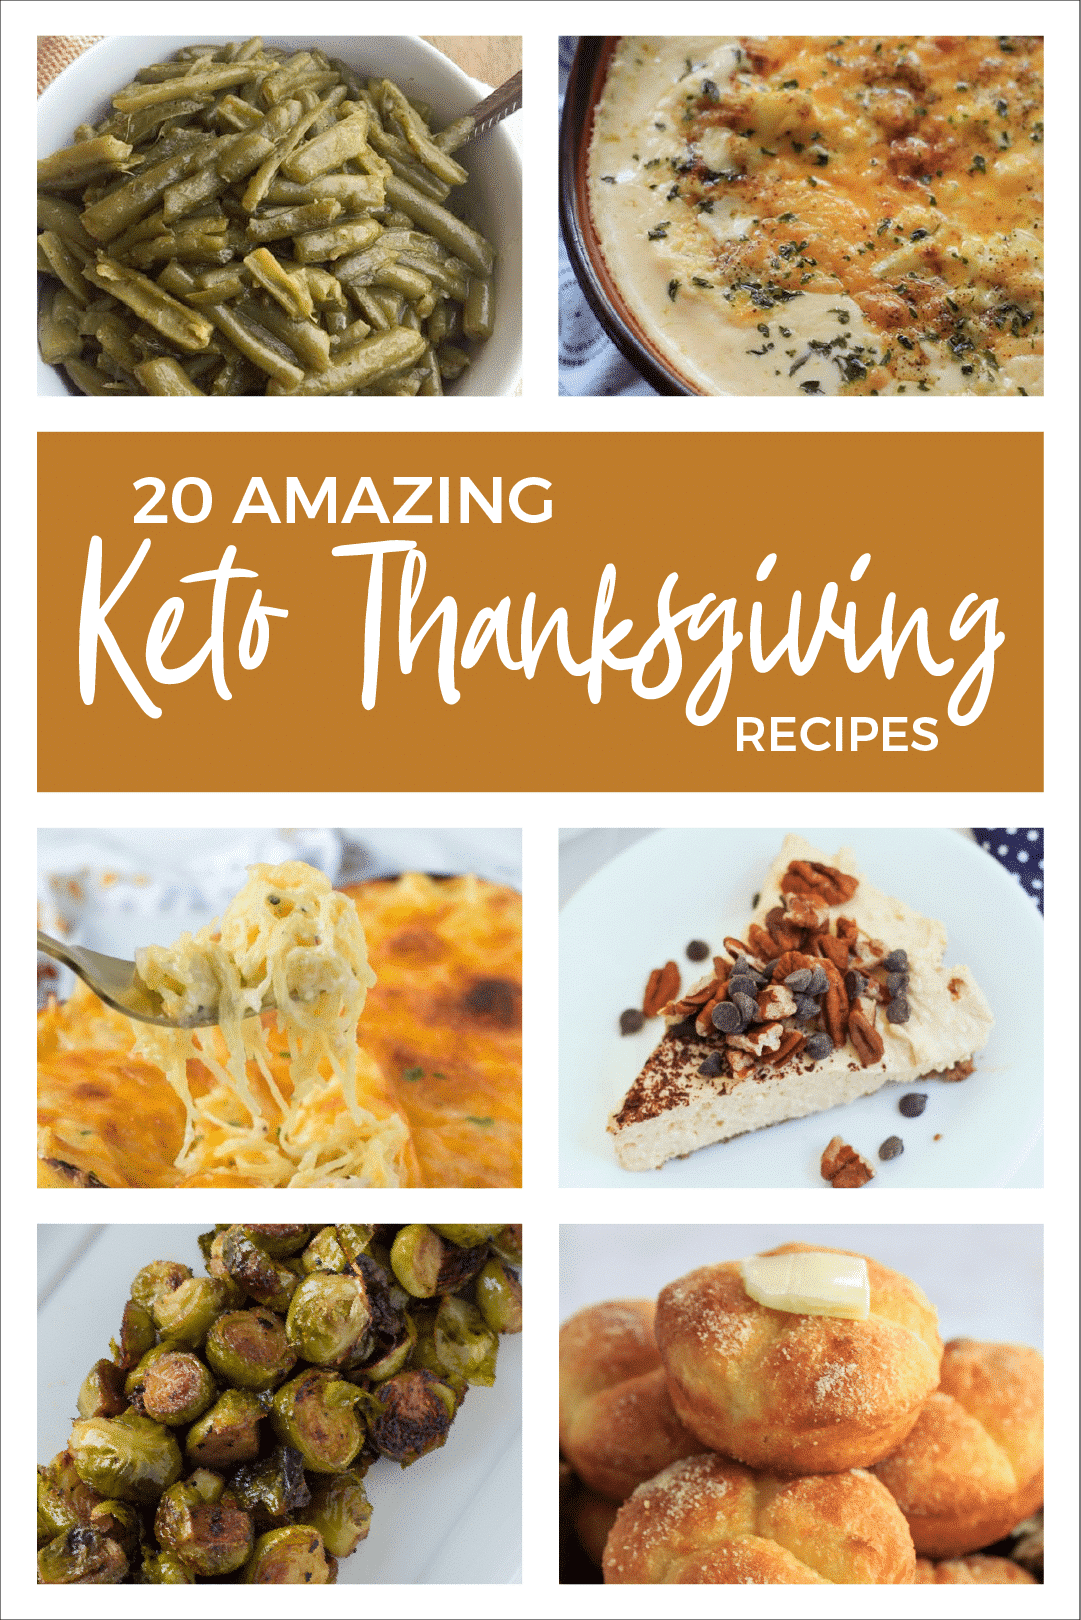 Keto Thanksgiving Recipes to Stay on Track